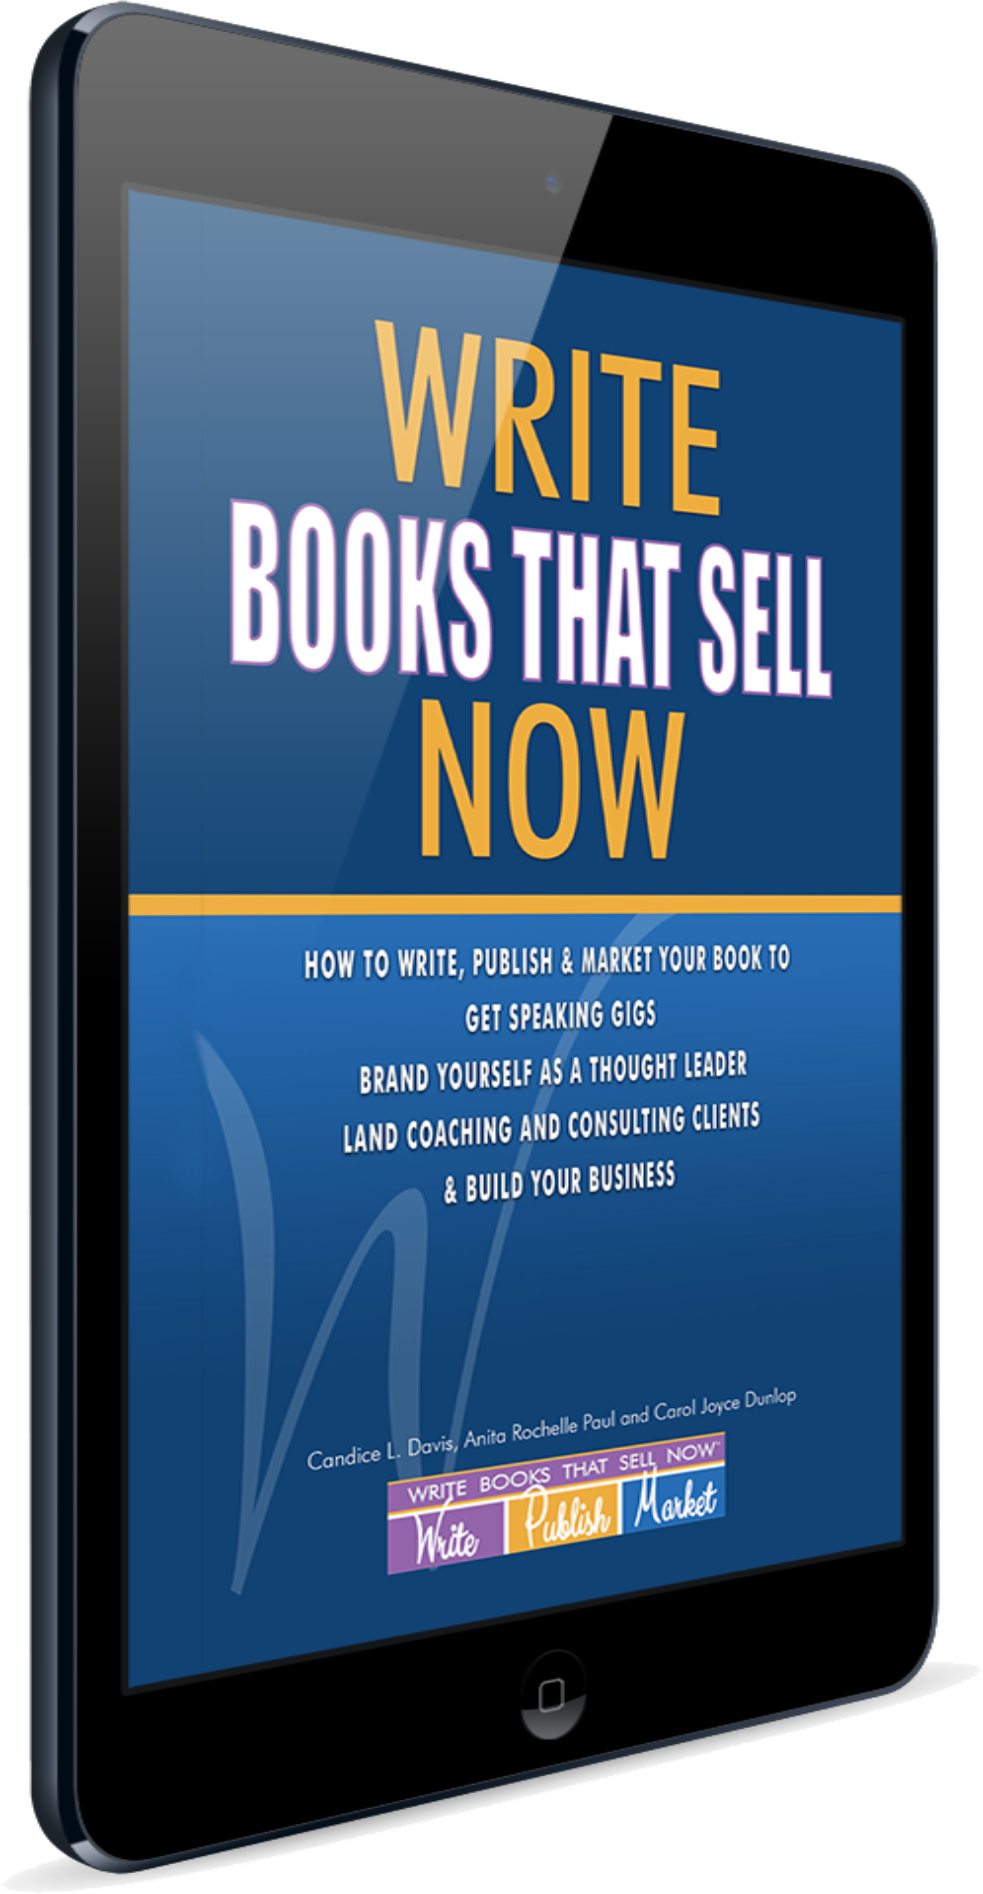 our clients write your life publish and market your book to get speaking gigs brand yourself as a thought leader land coaching and consulting clients build your business